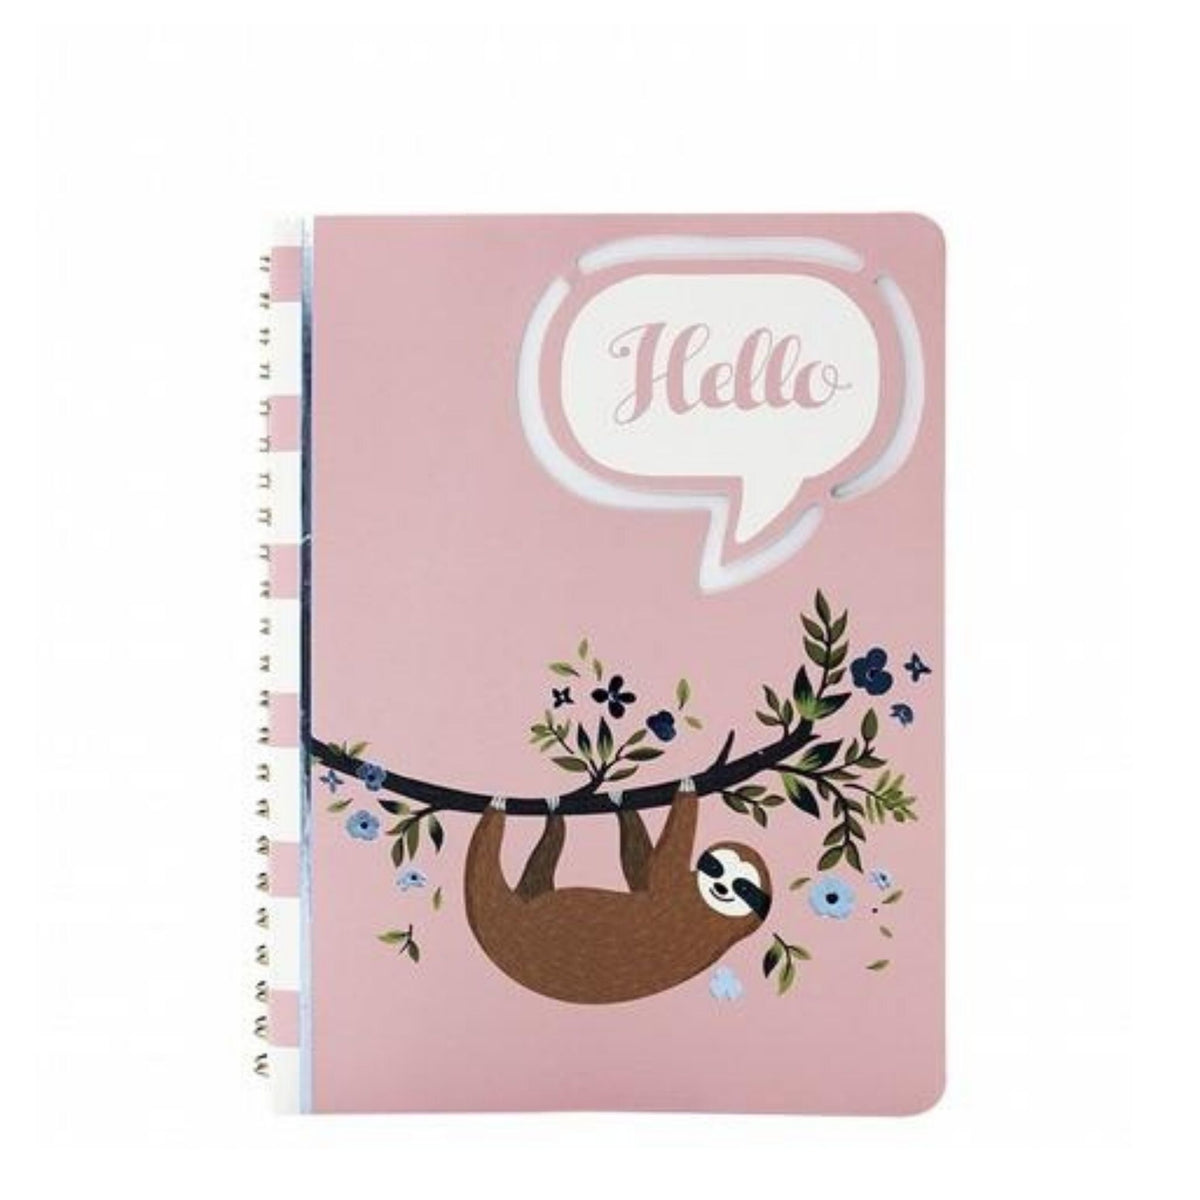 Sloth Notebook